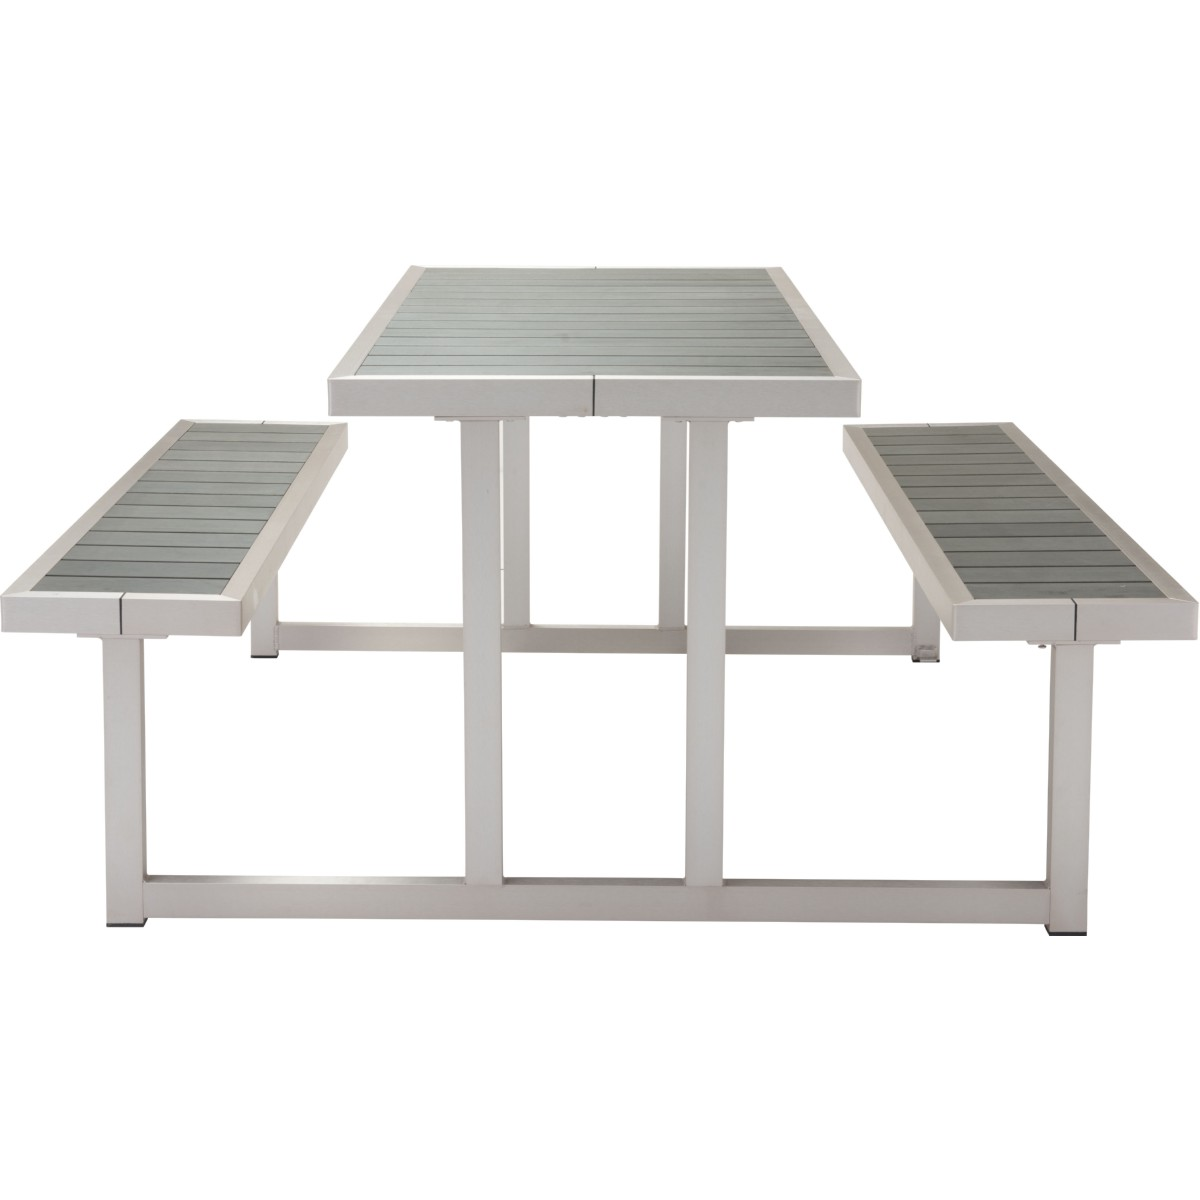 Zuo Cuomo Picnic Table Benches W Poly Wood Tops On - Polywood picnic table with benches